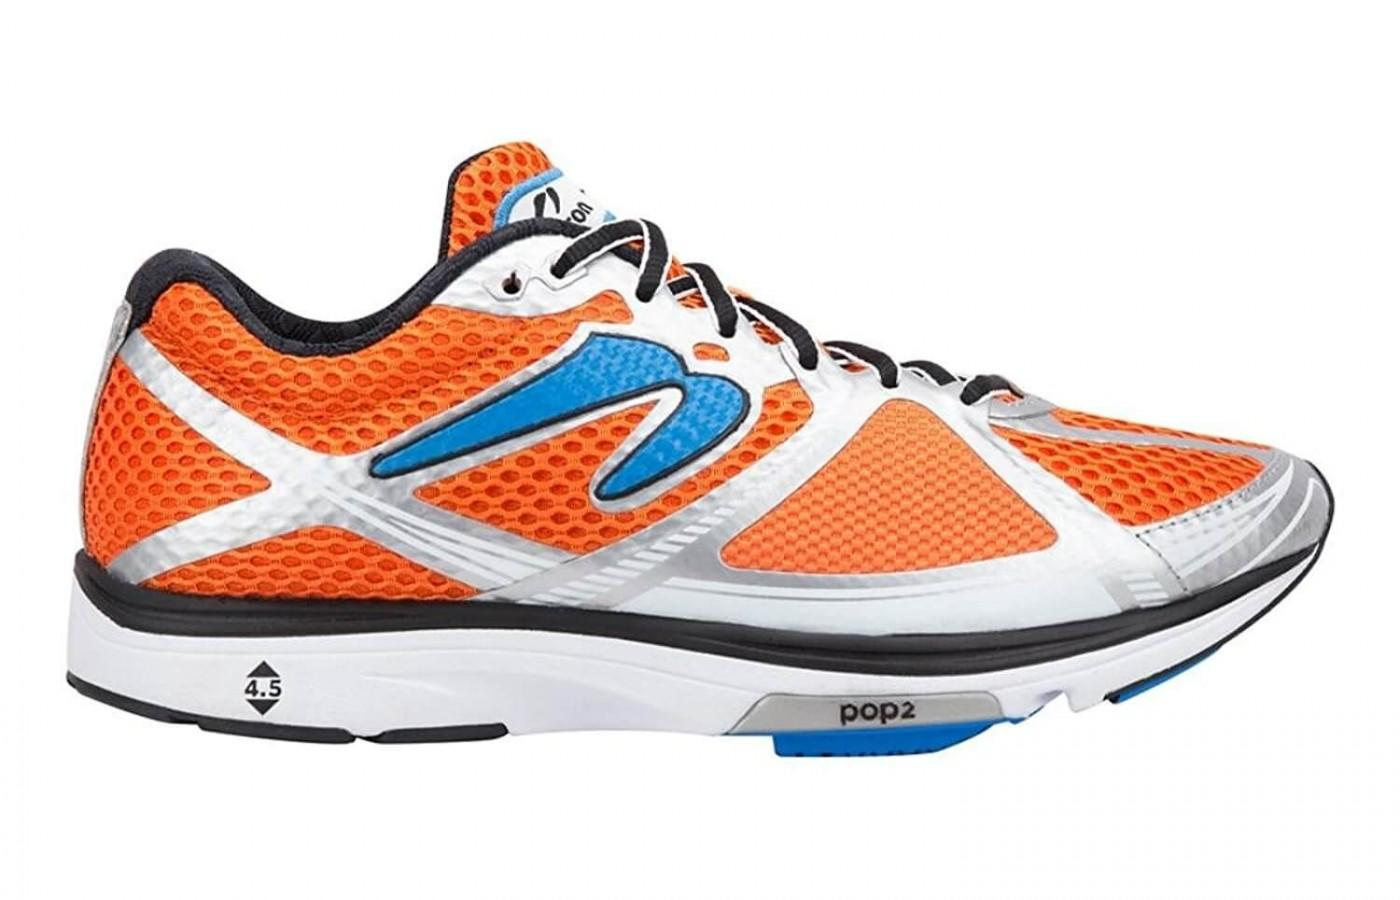 the Newton Kismet 3 is a high-performance stability shoe